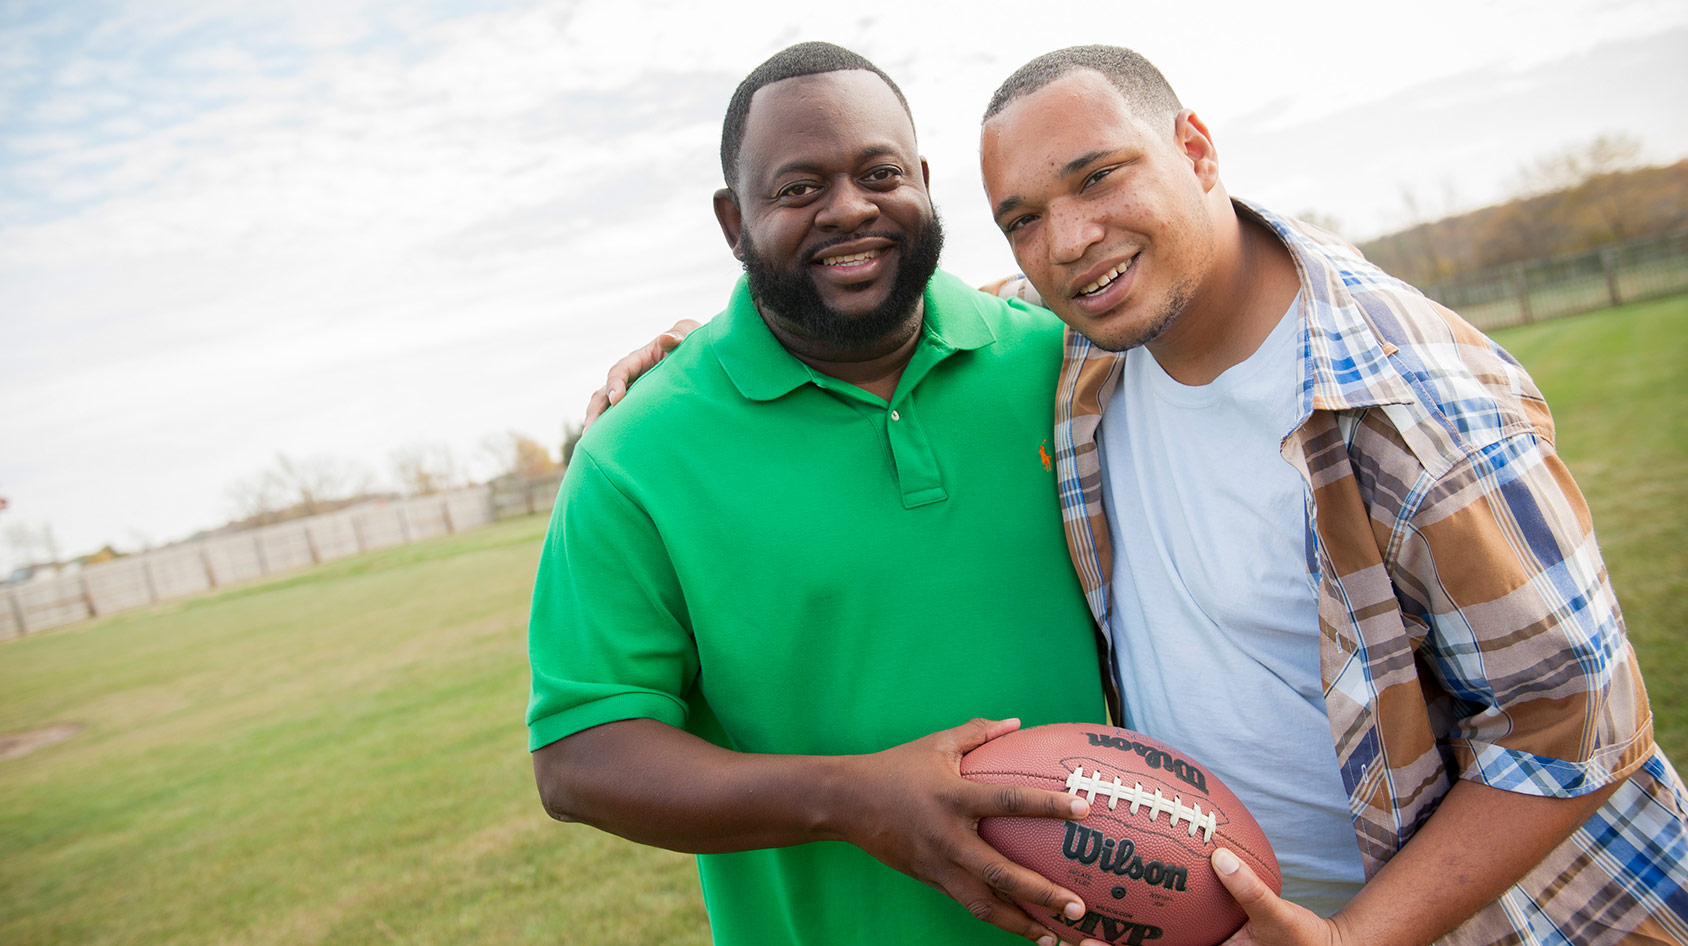 Two Men Smiling With Football